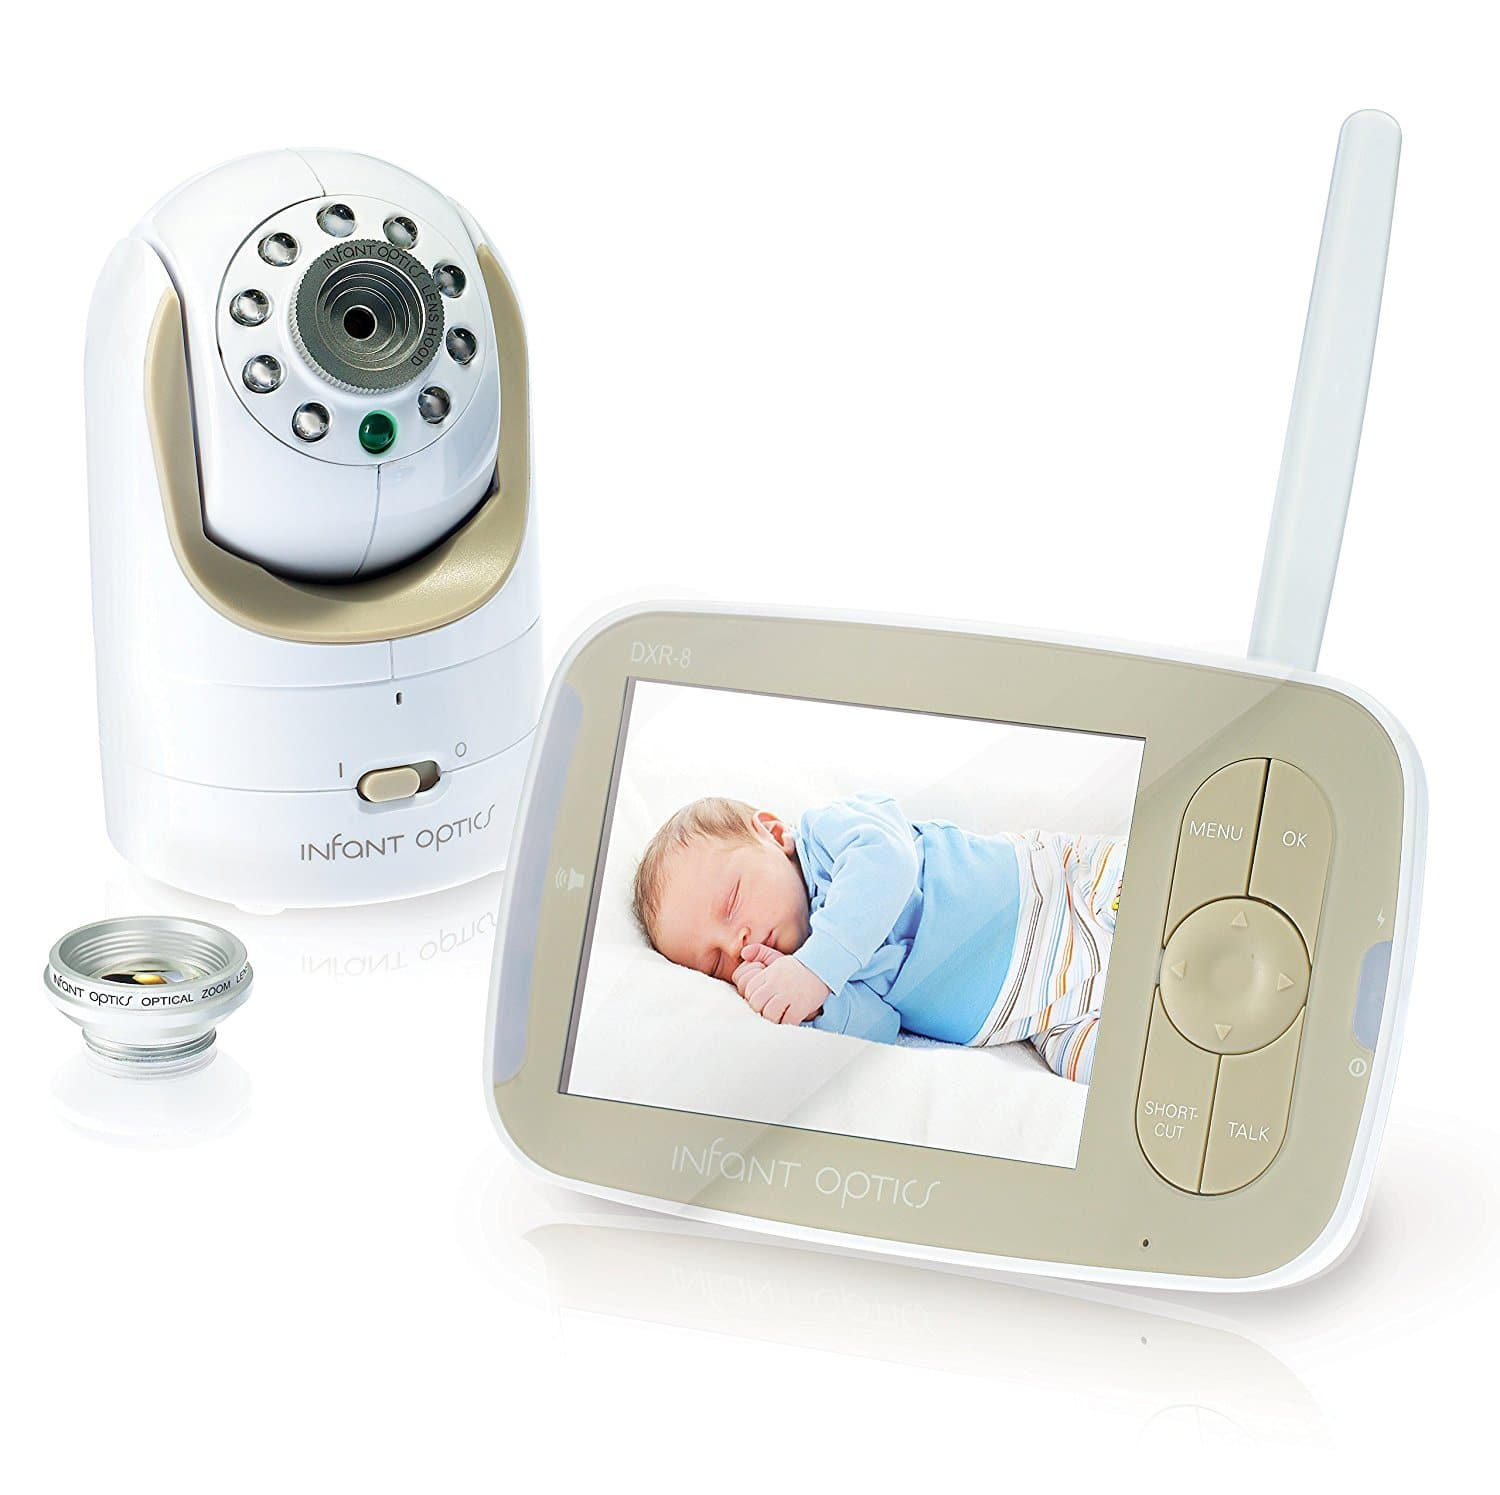 DEAL STILL ALIVE NOT EXPIRED!! Infant Optics DXR-8 TOP RATED RF Video Baby Monitor CHEAPEST PRICE EVER---$127.49 FS